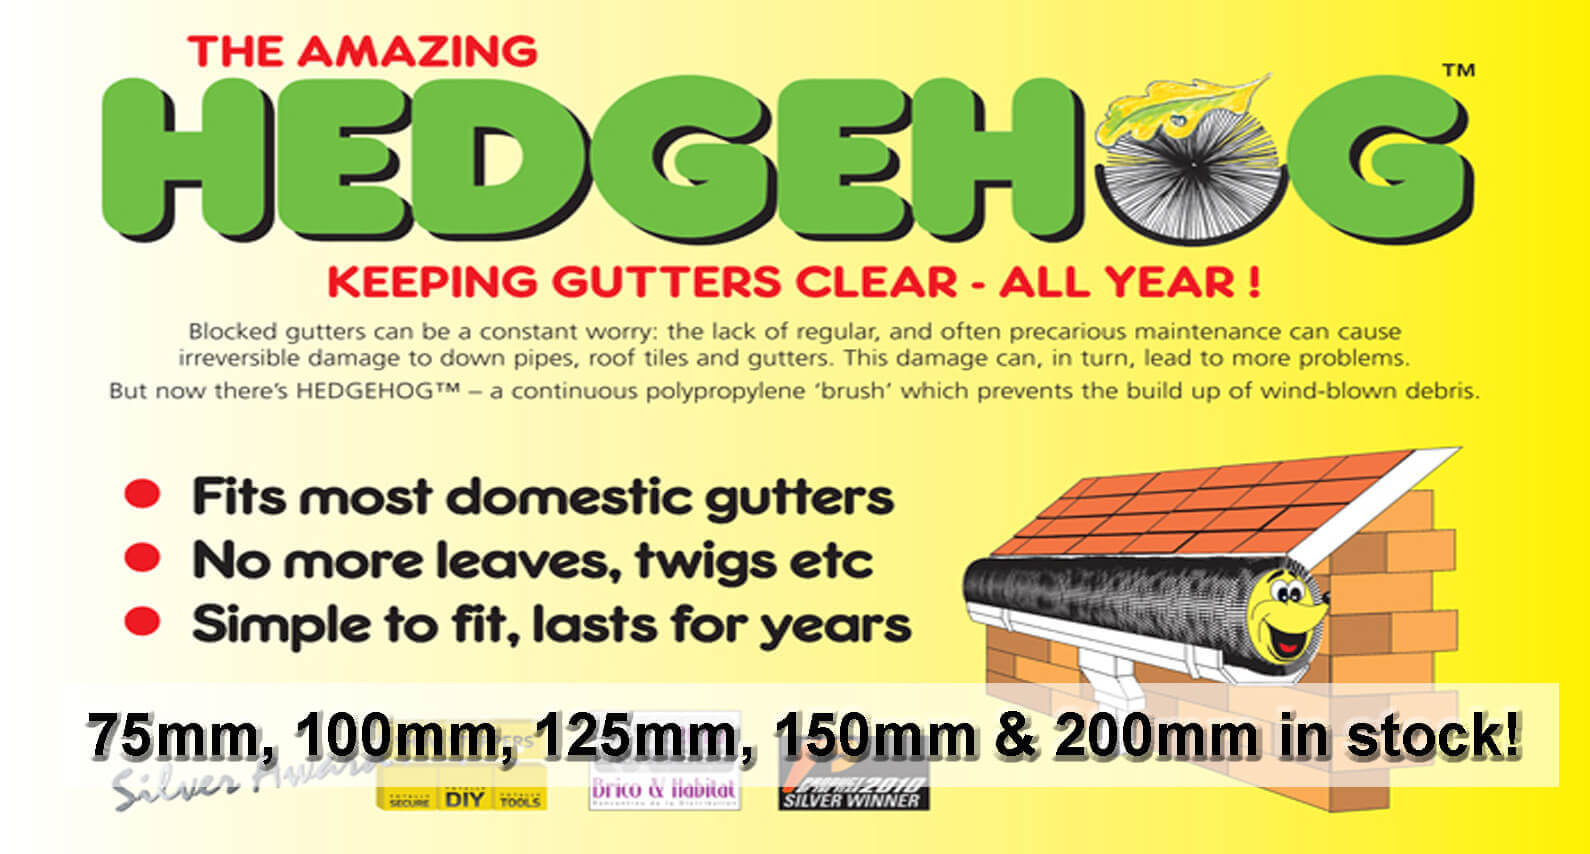 Hedgehog Gutter Brush - About Roofing Supplies